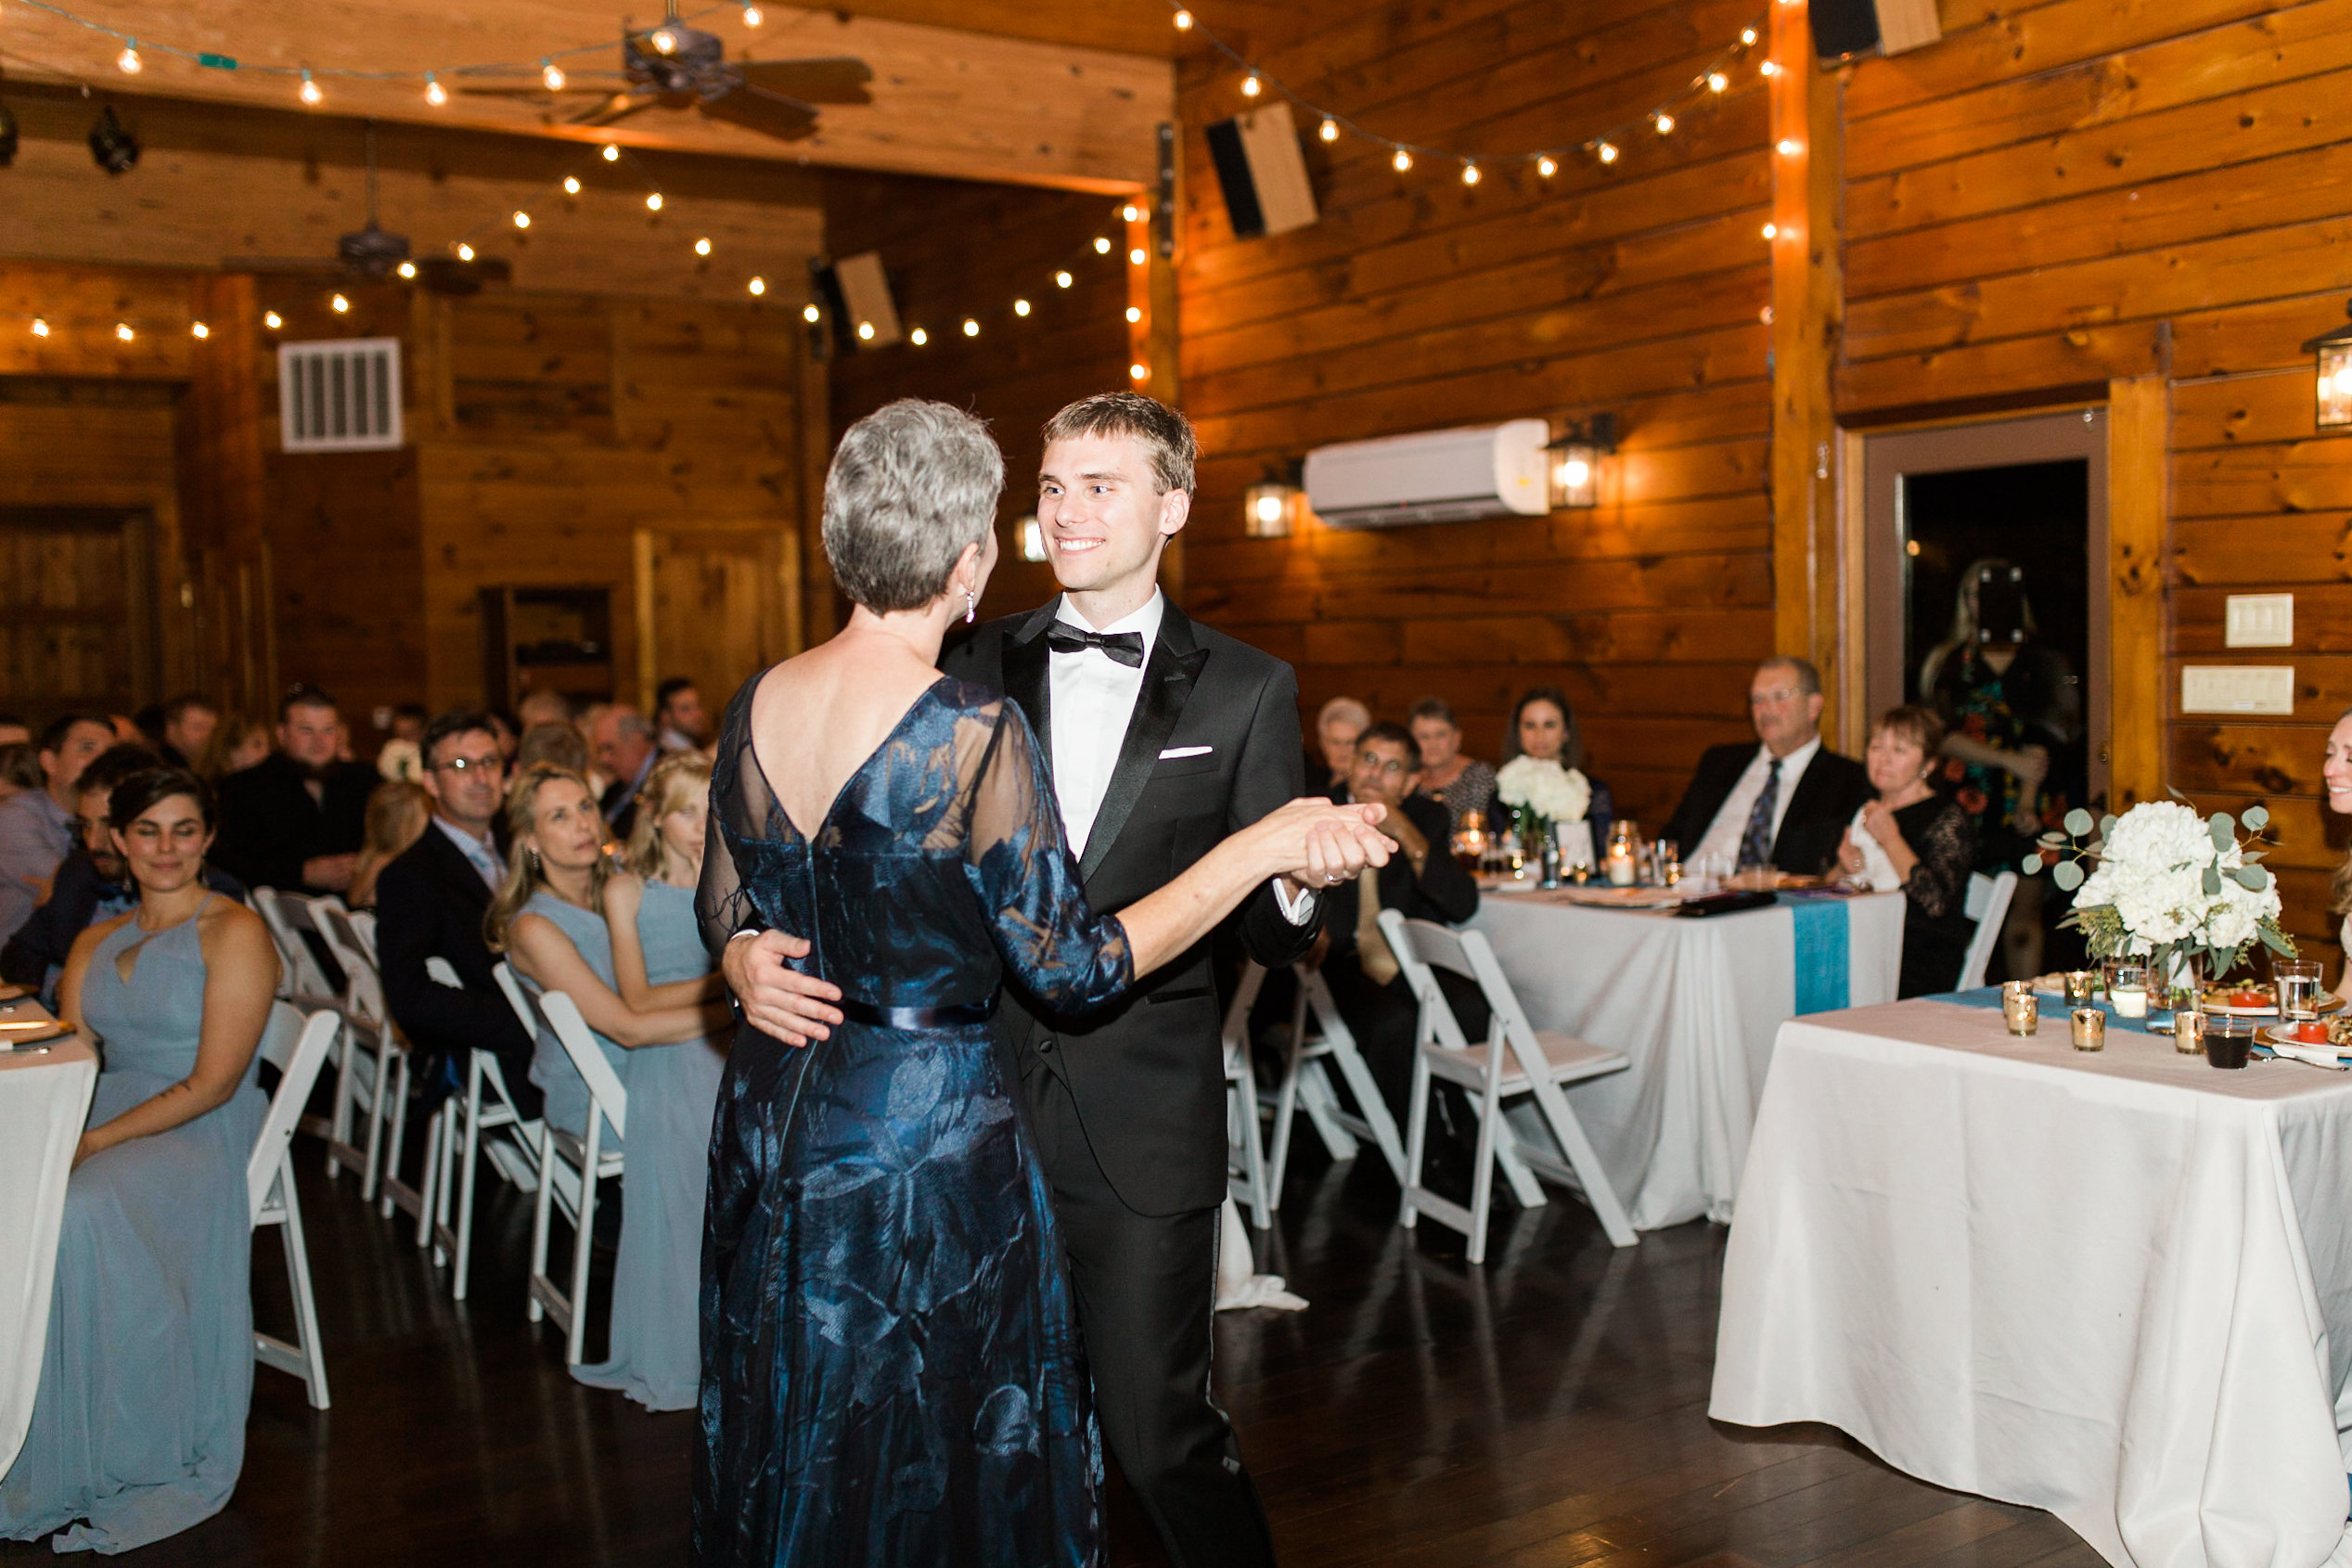 Carrie Albert S All Smiles Wedding At The Barn At Valhalla In Chapel Hill Nc All Around Raleigh Dj